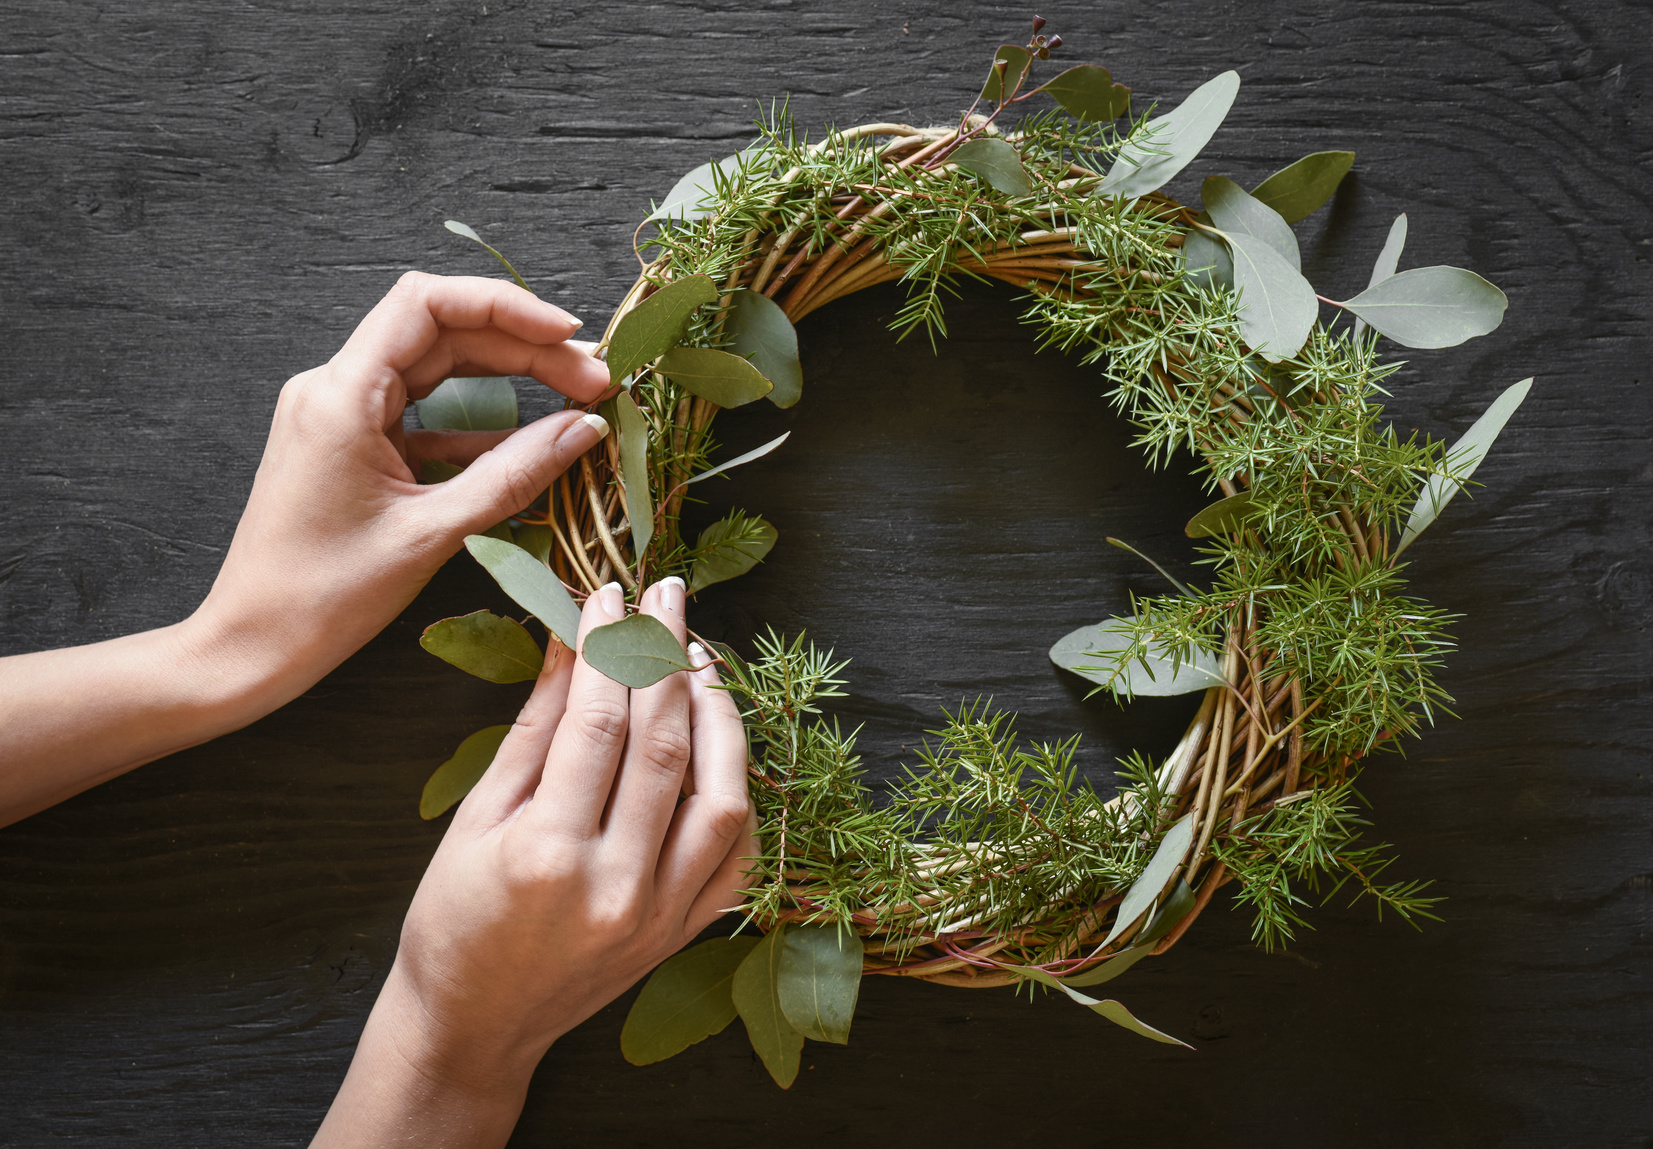 Hands making a wreath from eucalyptus and fir tree